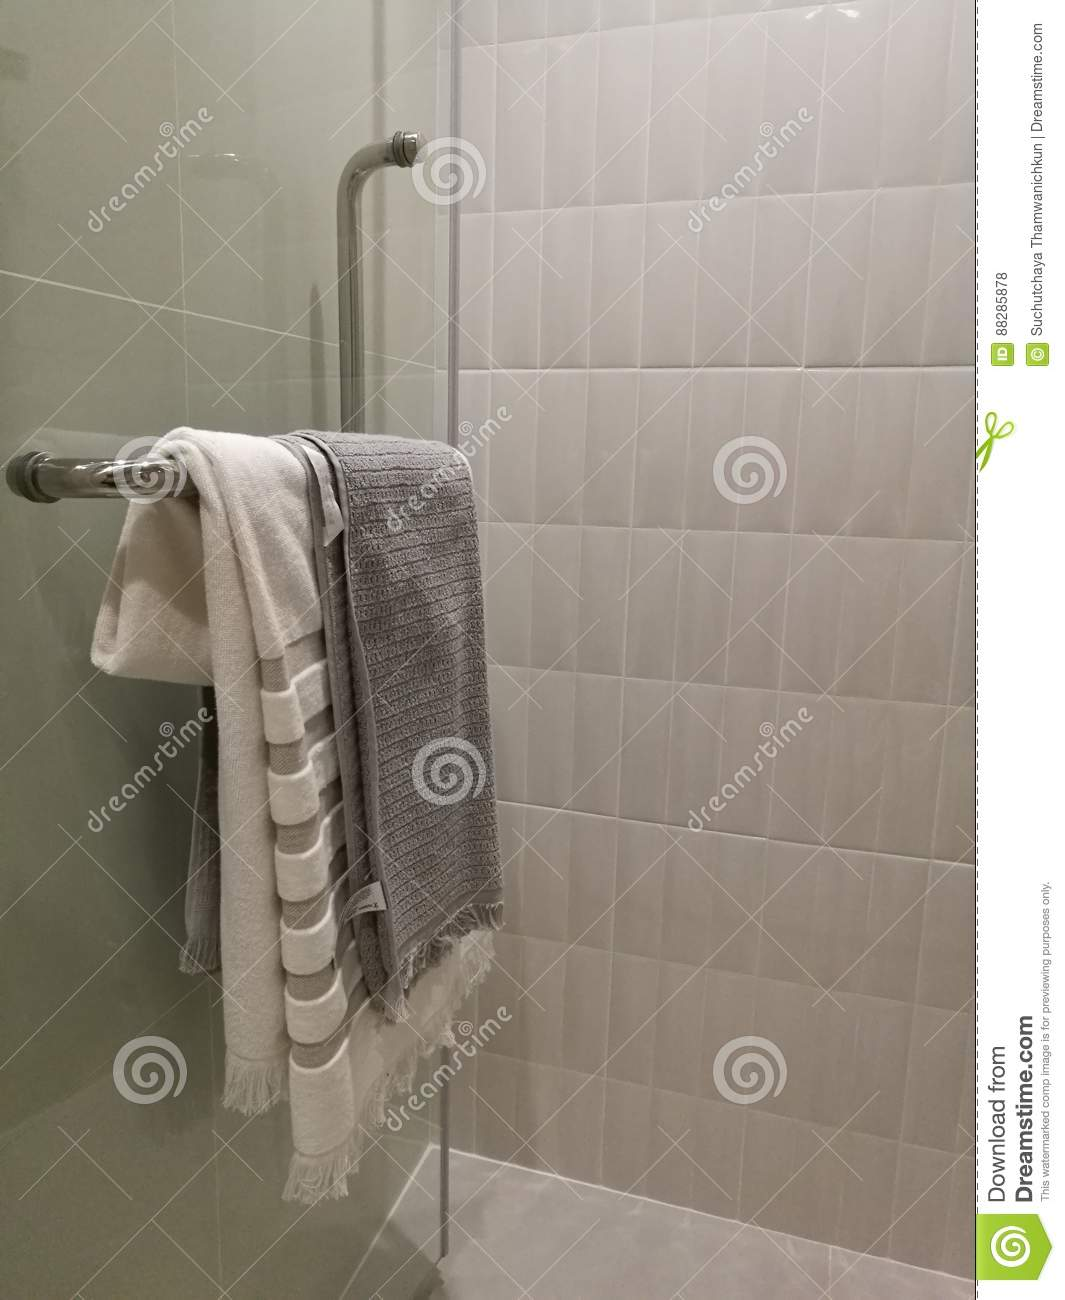 Beautiful Luxury Shower Box Decoration In Bathroom Interior Closed Up Tower Hanging On Towel Rack